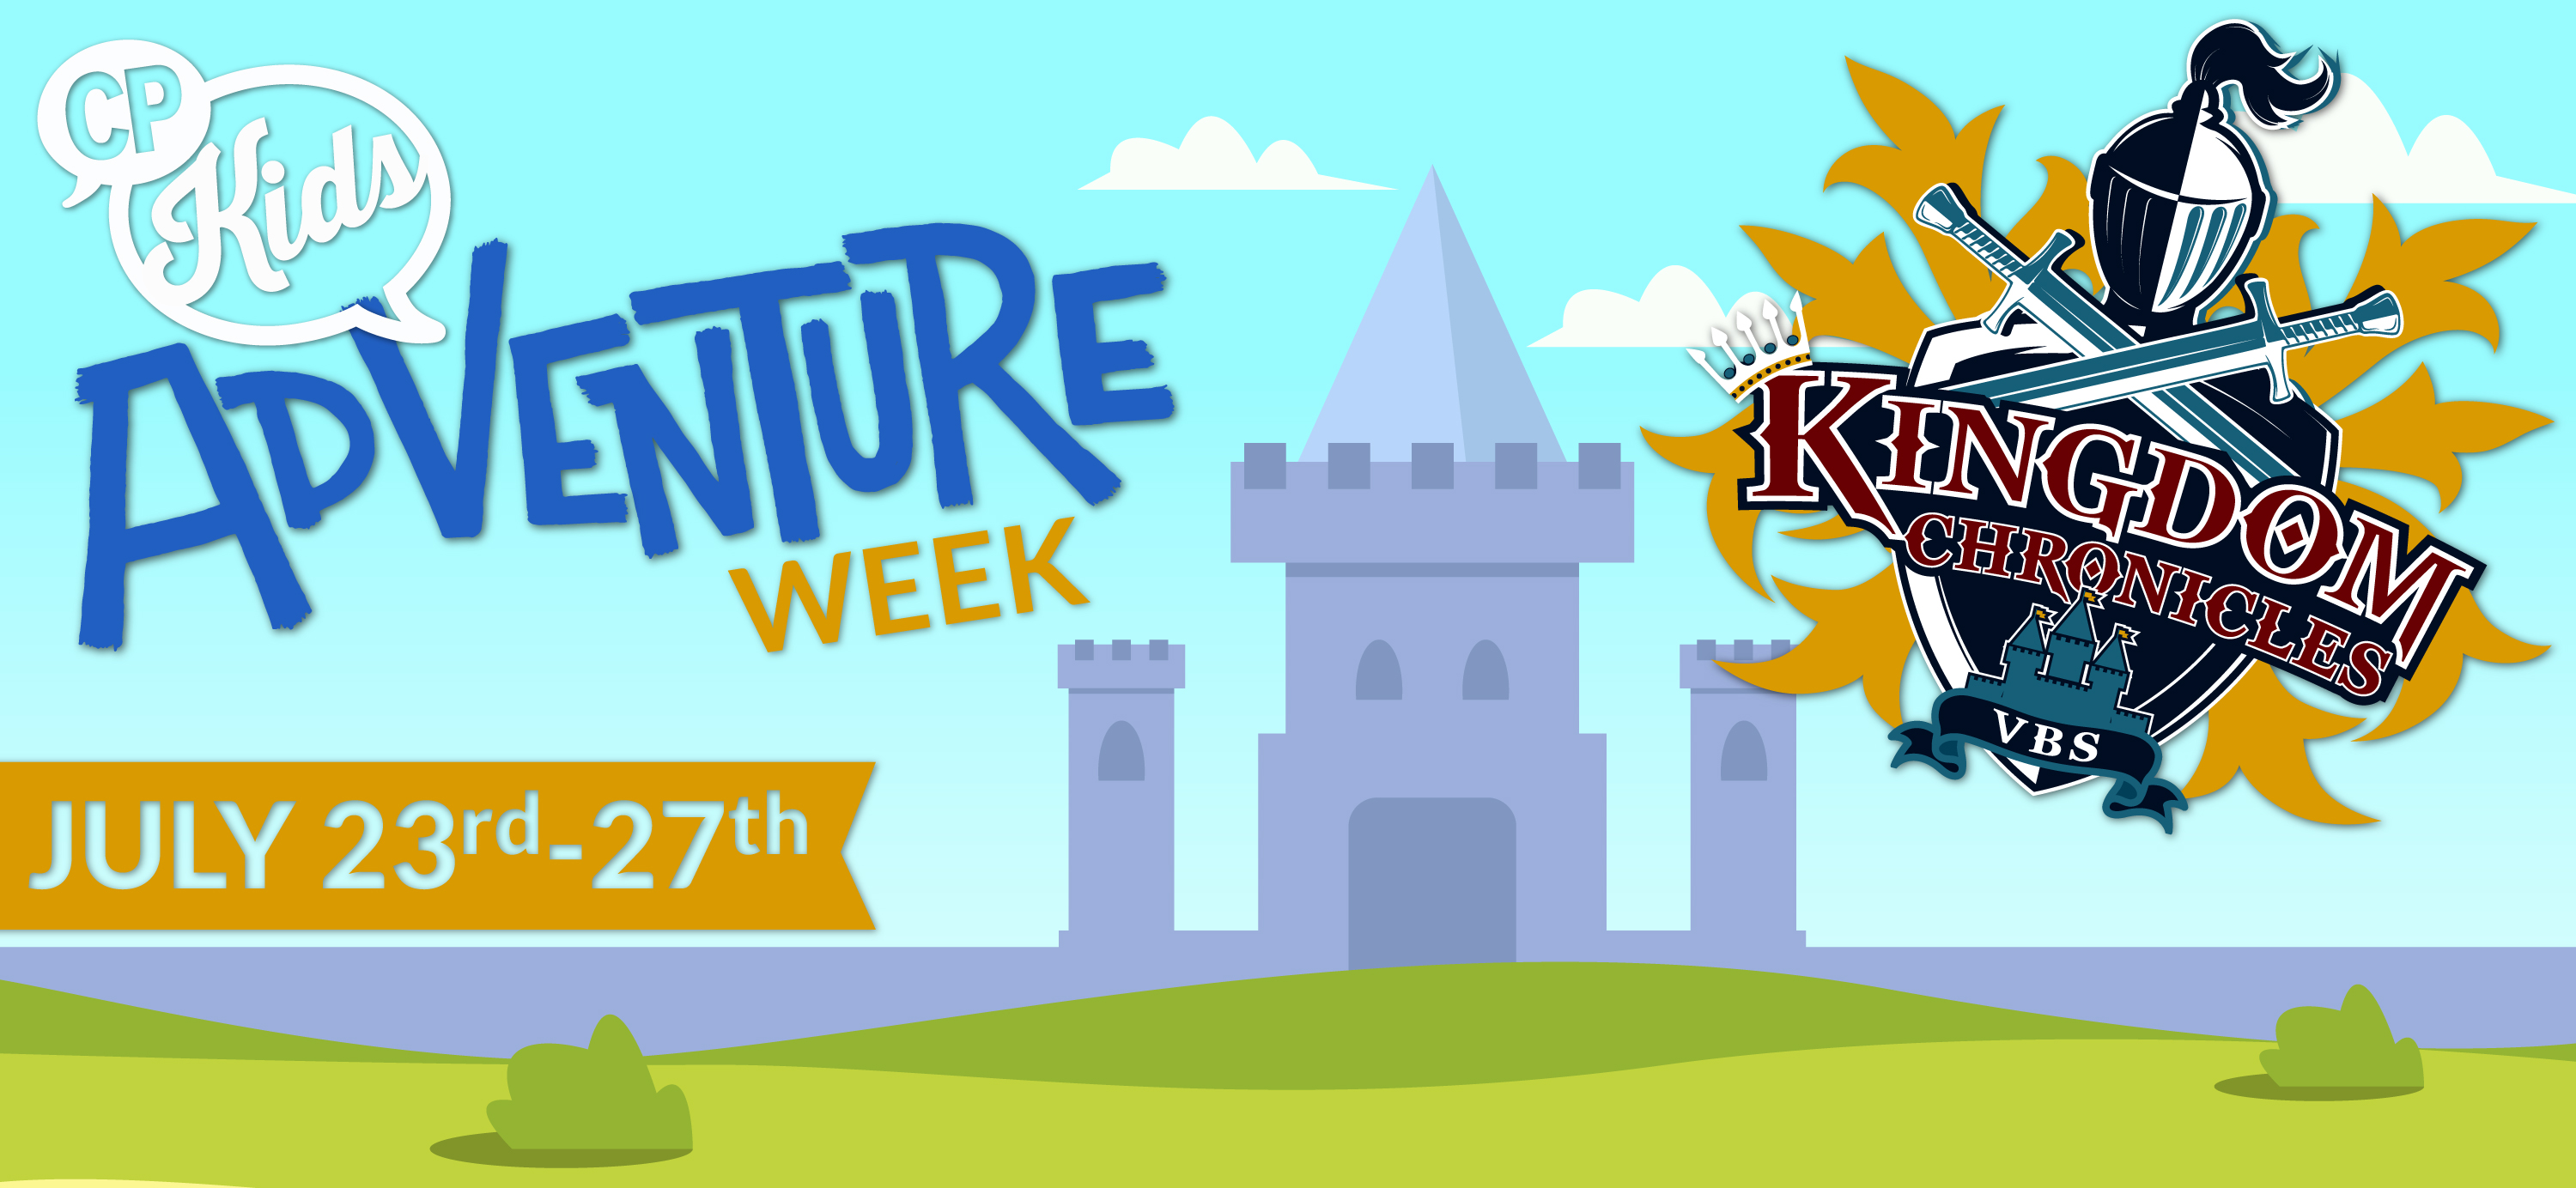 Cp kids adventure week header image